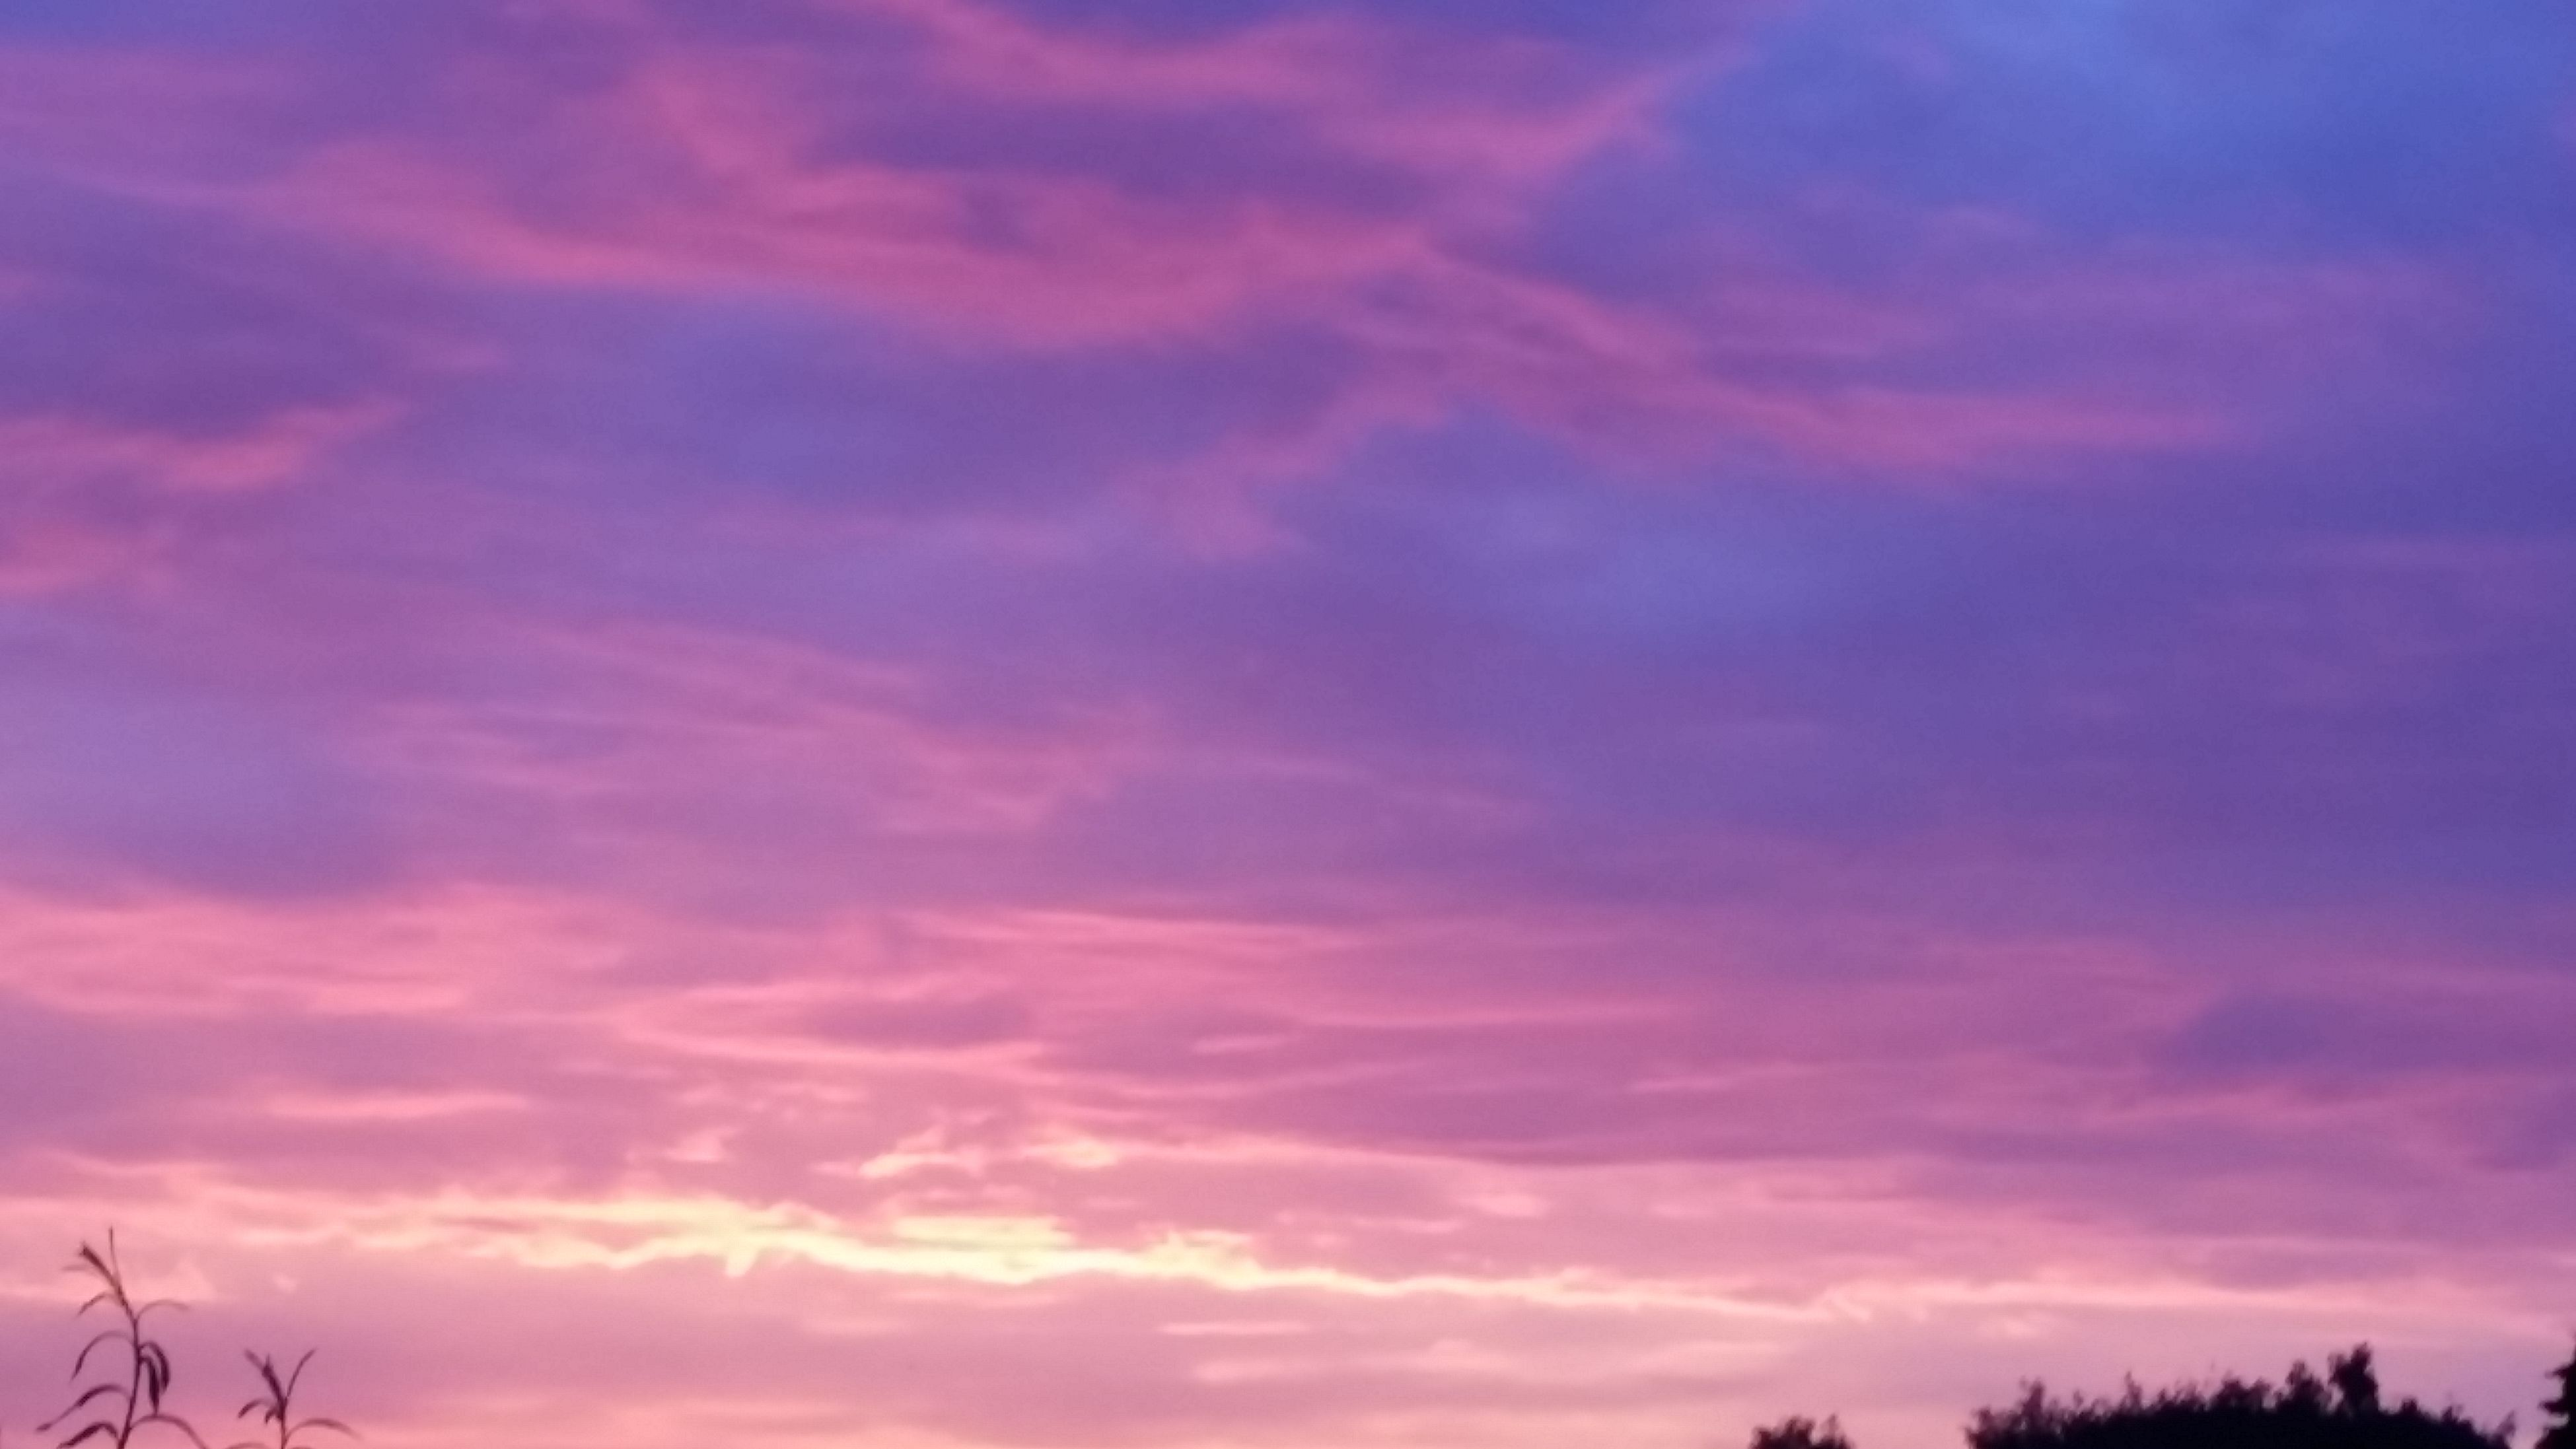 sky, sunset, low angle view, cloud - sky, beauty in nature, tranquility, scenics, silhouette, tranquil scene, nature, cloudy, cloud, tree, dramatic sky, orange color, idyllic, outdoors, no people, cloudscape, dusk